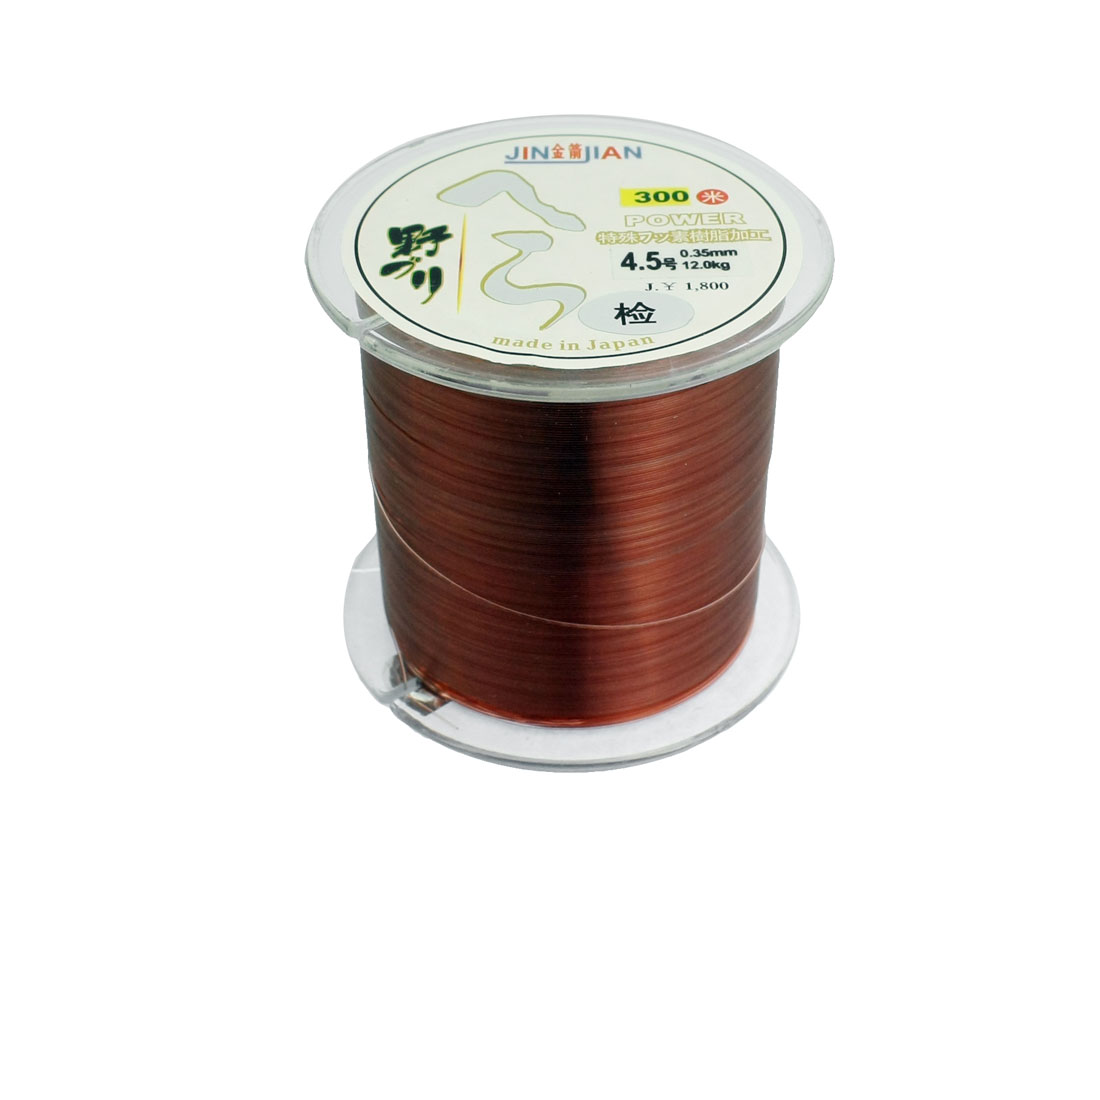 0.35mm Diameter 12Kg Brown Nylon Freshwater Fishing Spool Line 300m